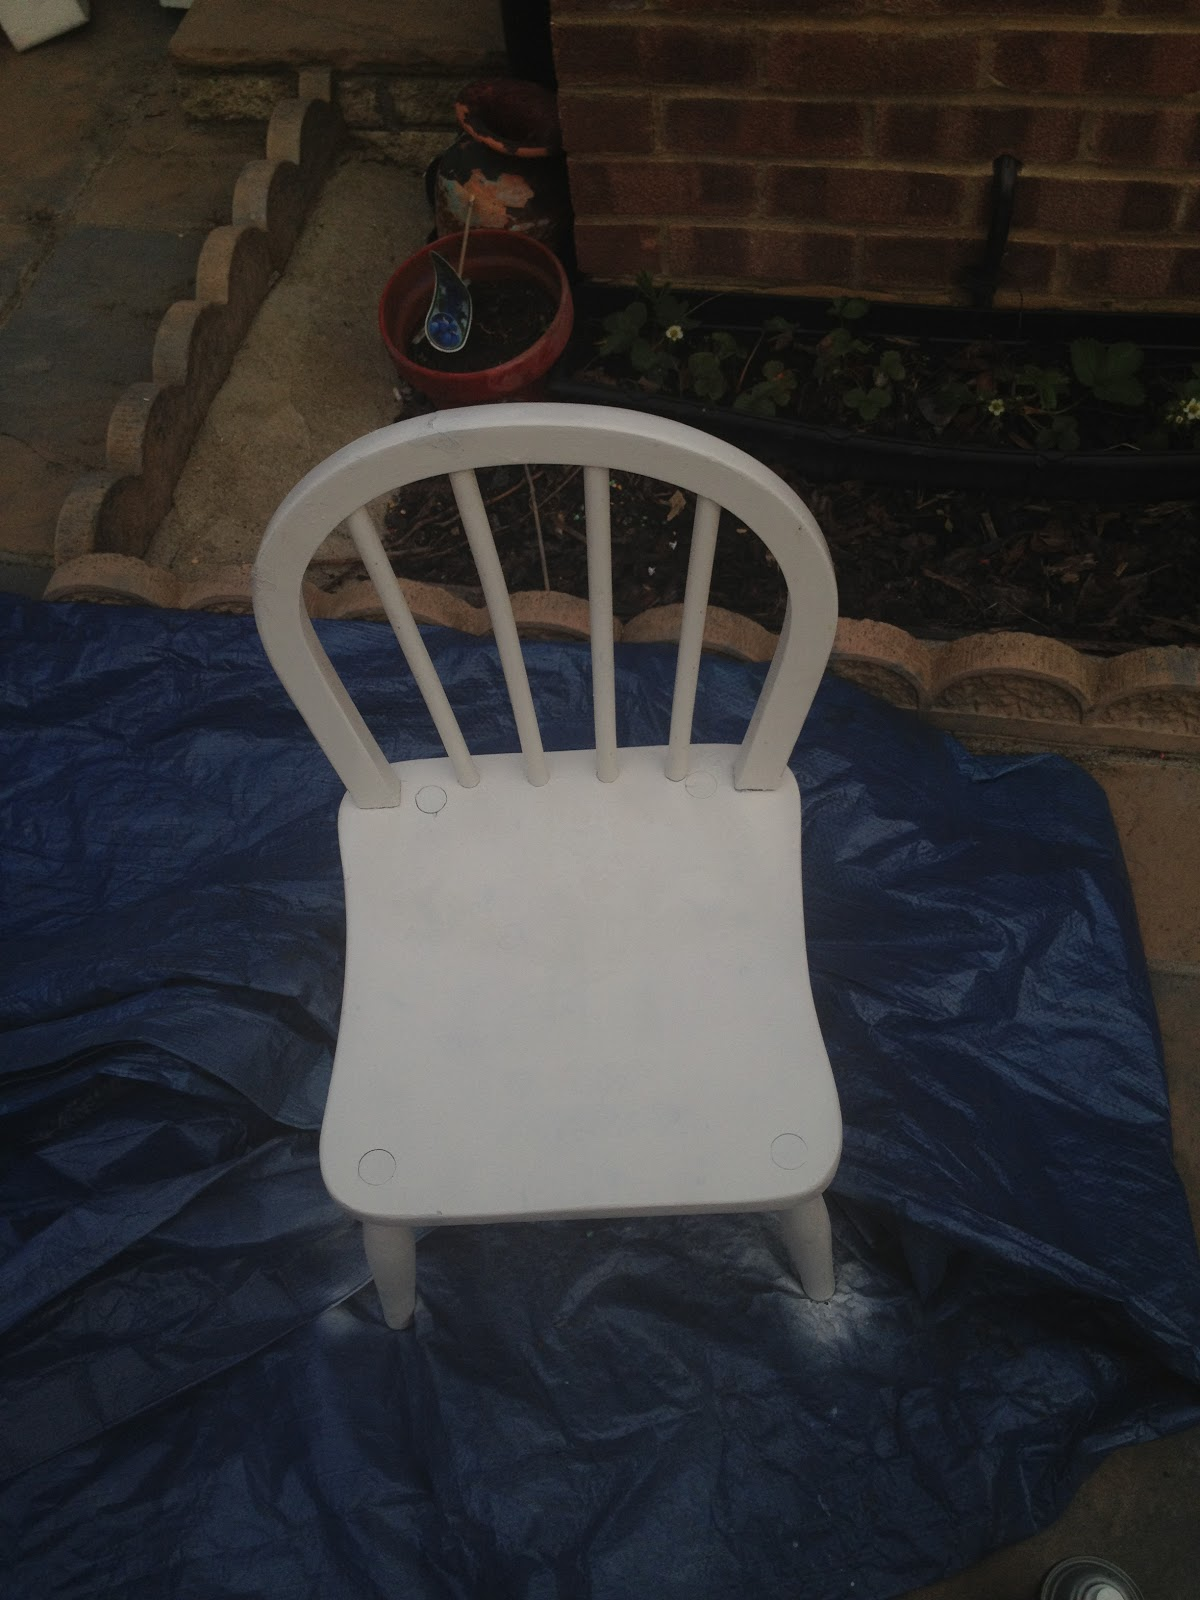 A white chair